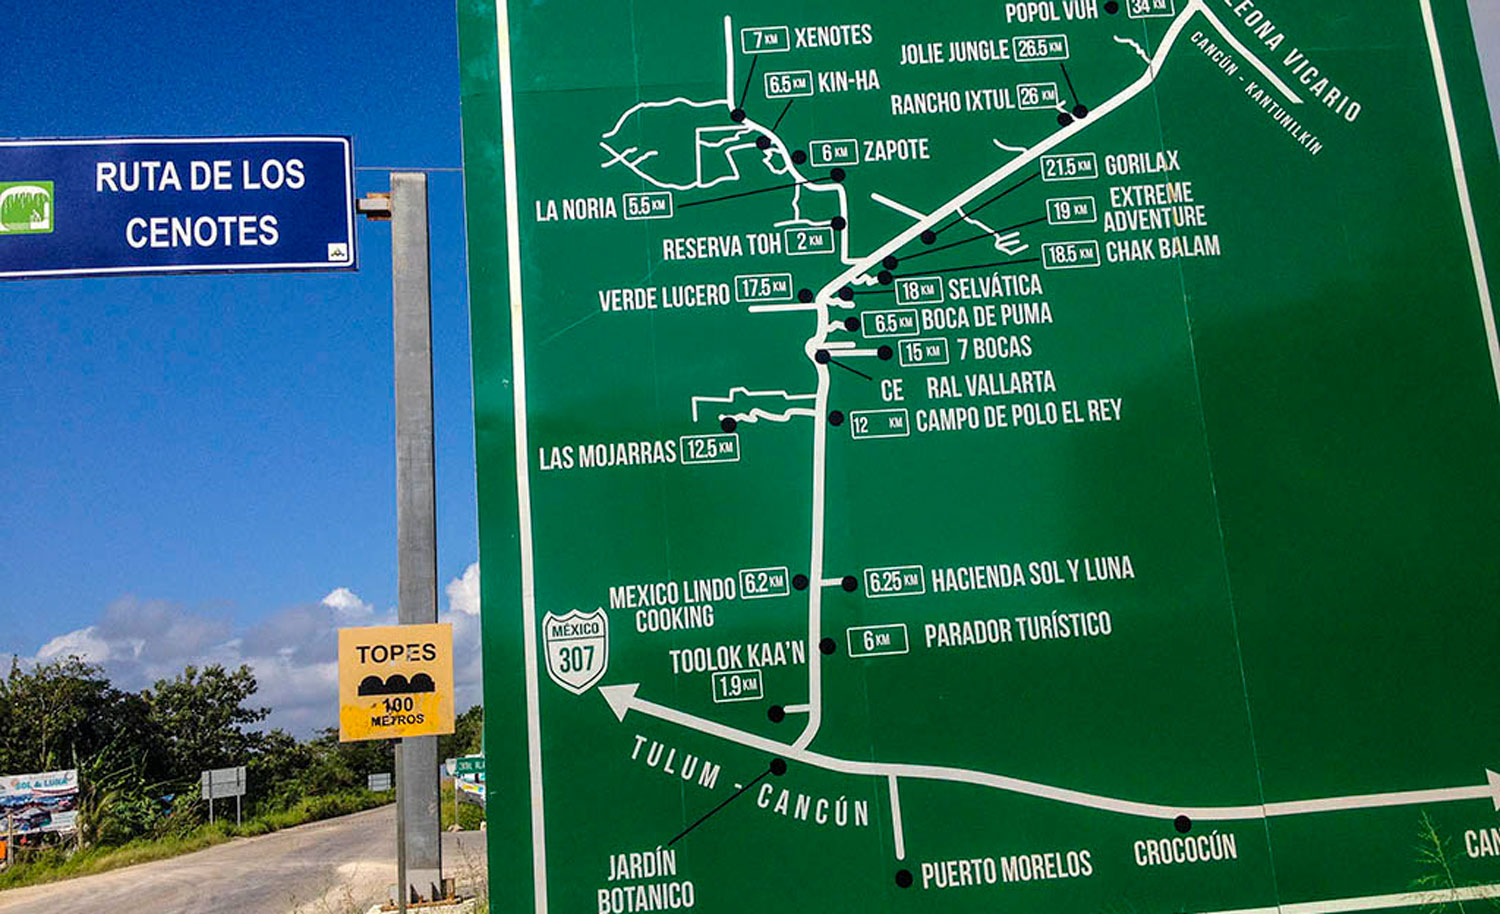 The map of the Cenote Route at Puerto Morelos.